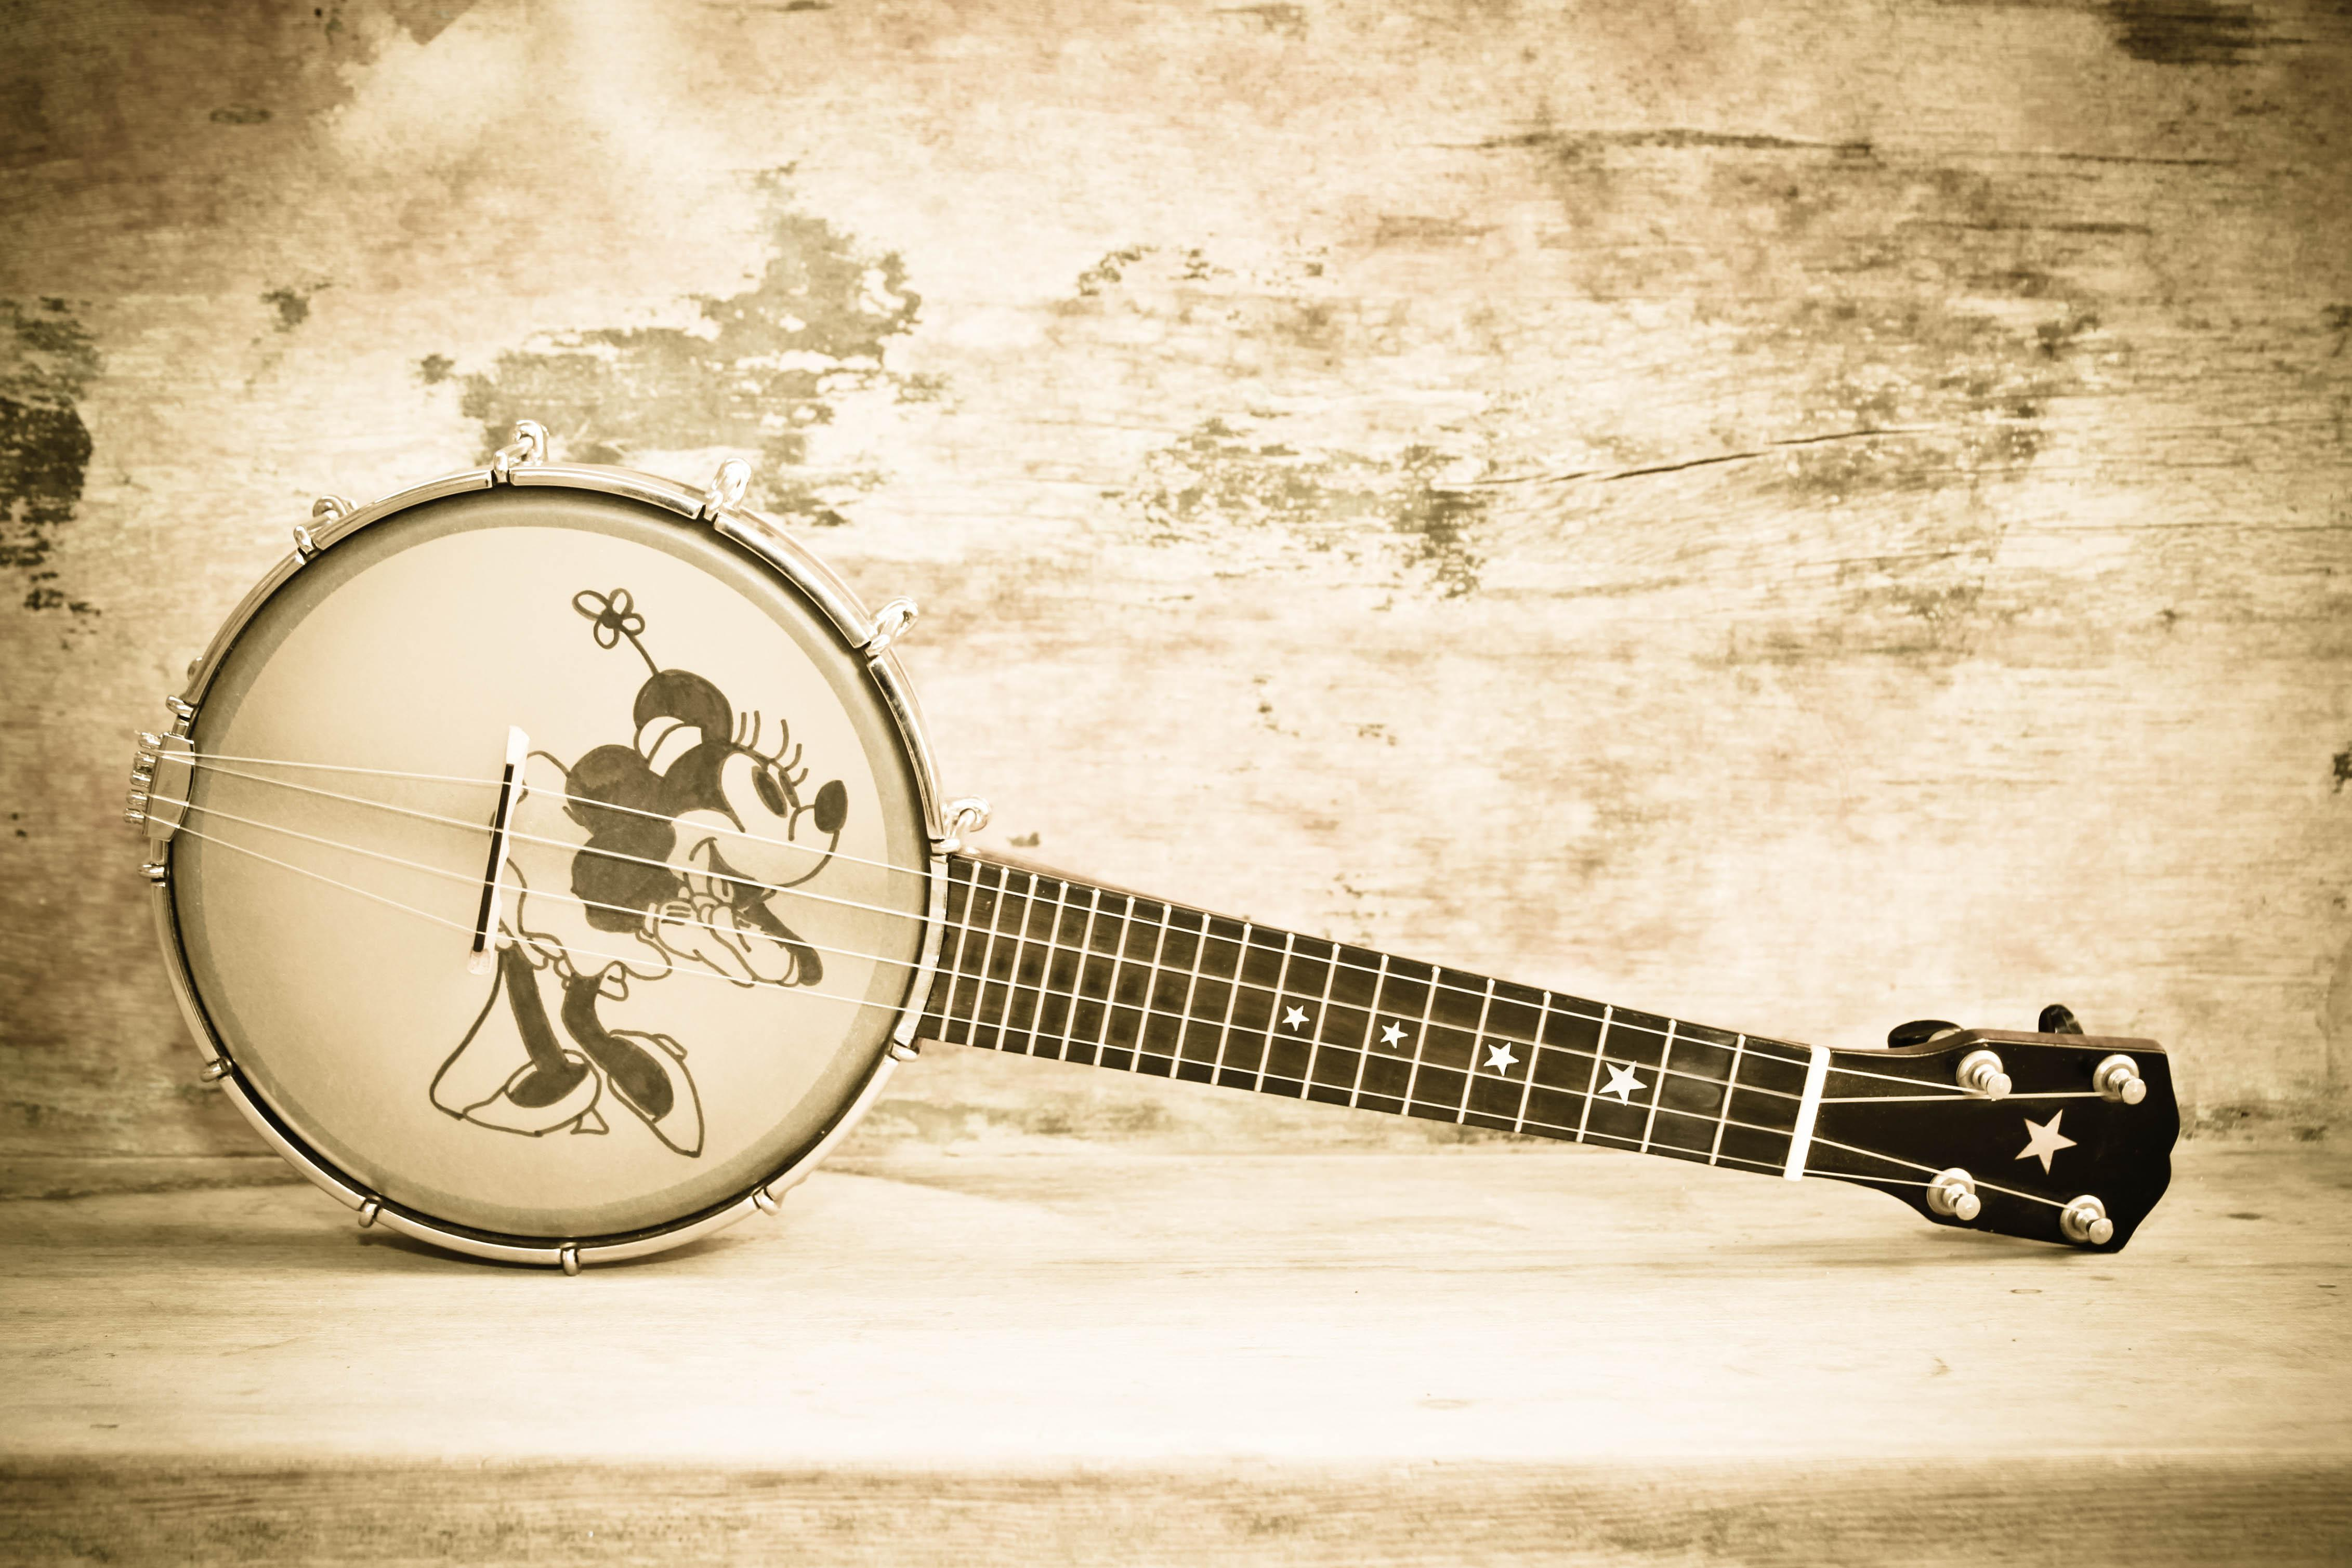 6 Banjo HD Wallpapers | Backgrounds - Wallpaper Abyss